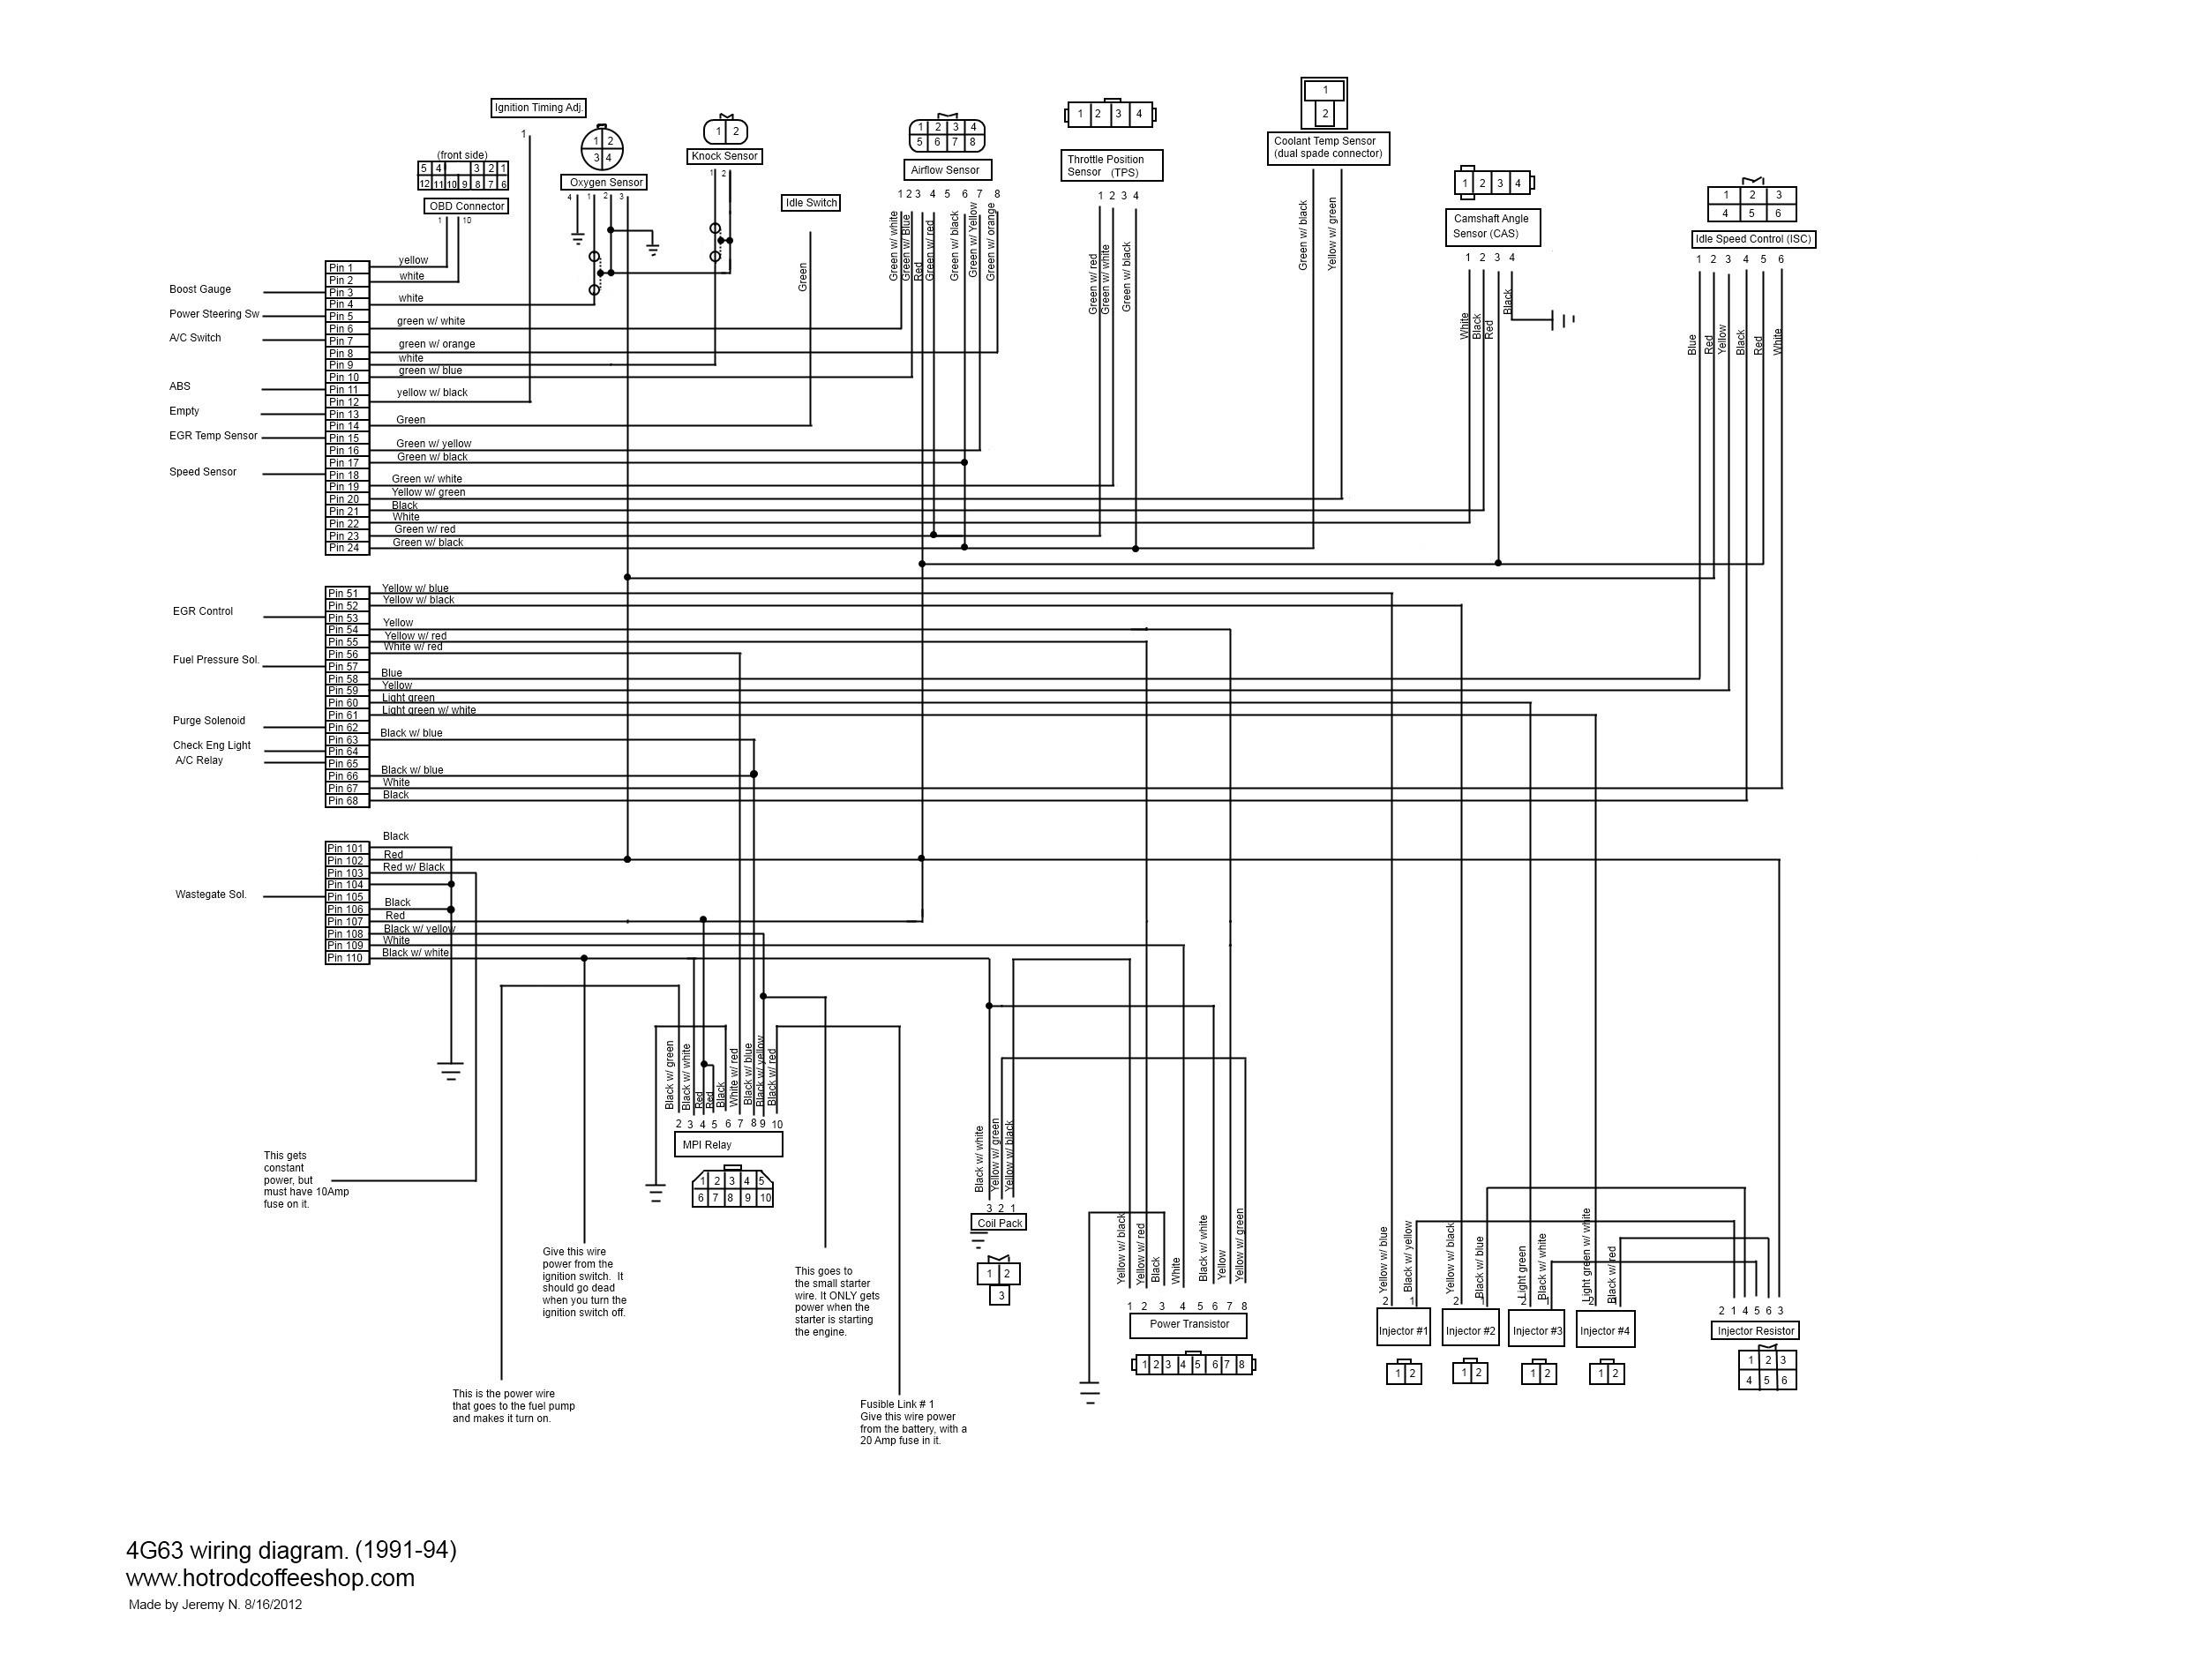 2001 Mitsubishi Eclipse Engine Diagram 2007 Mitsubishi Galant Wiring Diagram Schematic Diagram A Dual Of 2001 Mitsubishi Eclipse Engine Diagram